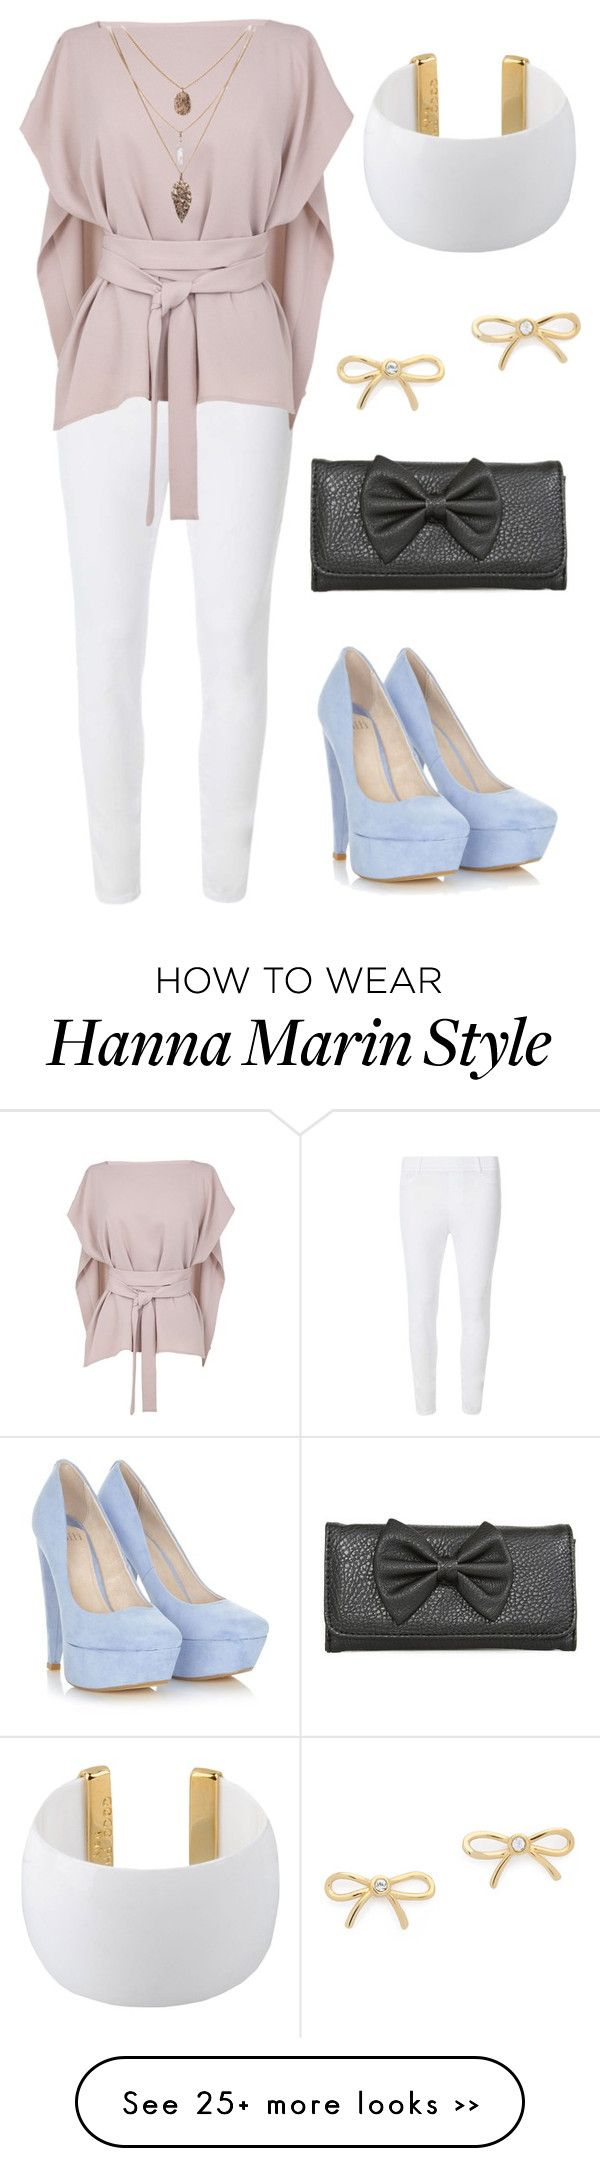 """Spencer Hastings / hanna marin"" by raanijayde on Polyvore featuring Dorothy Perkins, TIBI, Kate Spade and Gogo Philip"